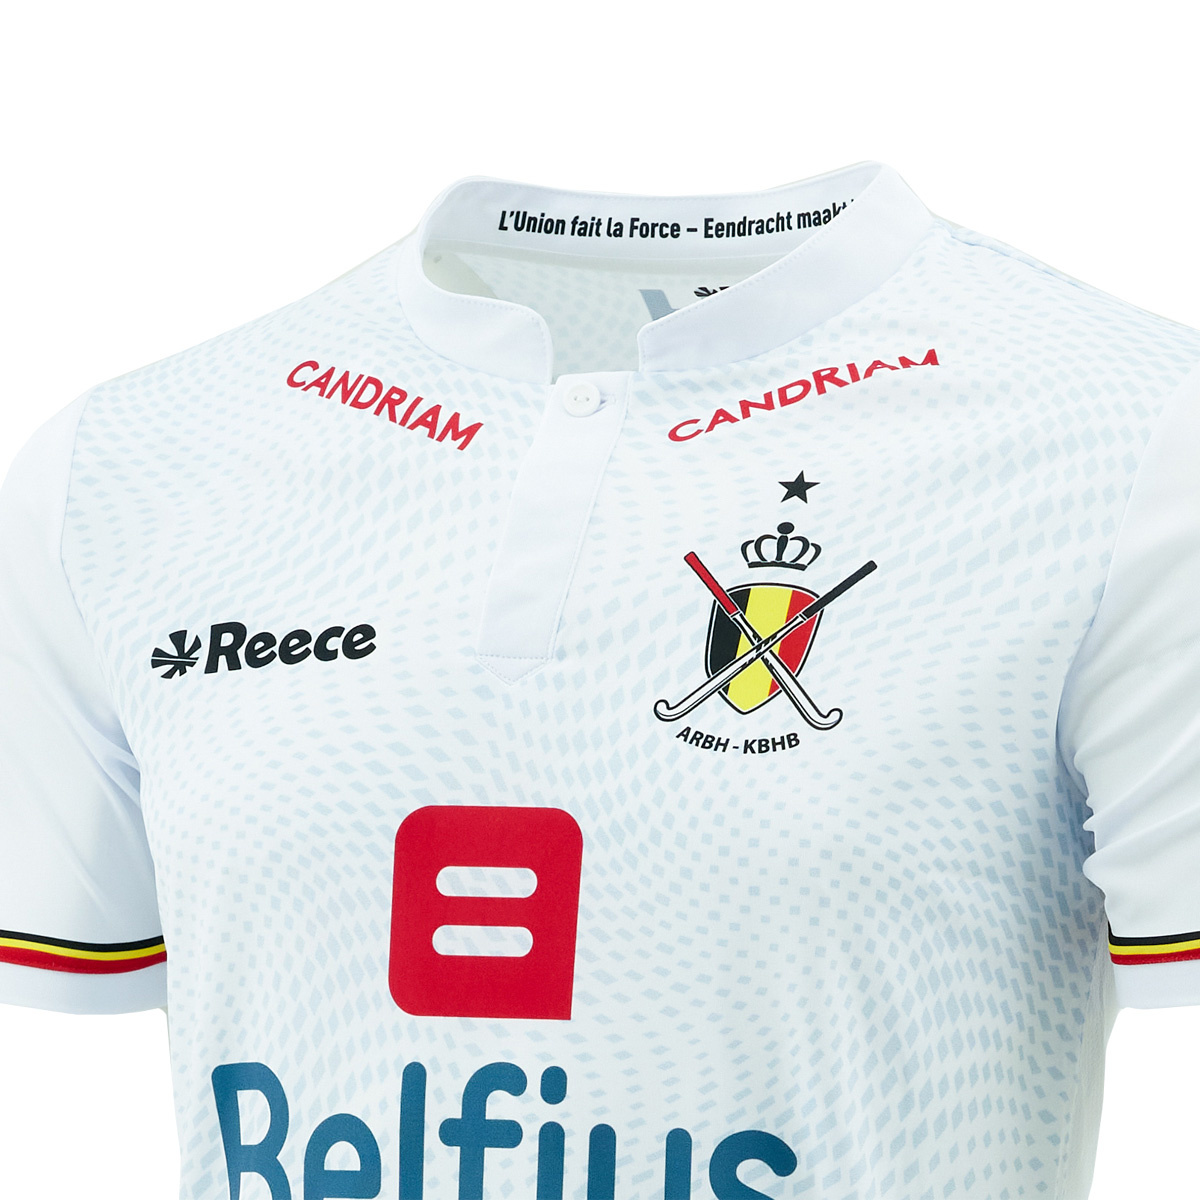 Topfanz Official match shirts wit Red Lions